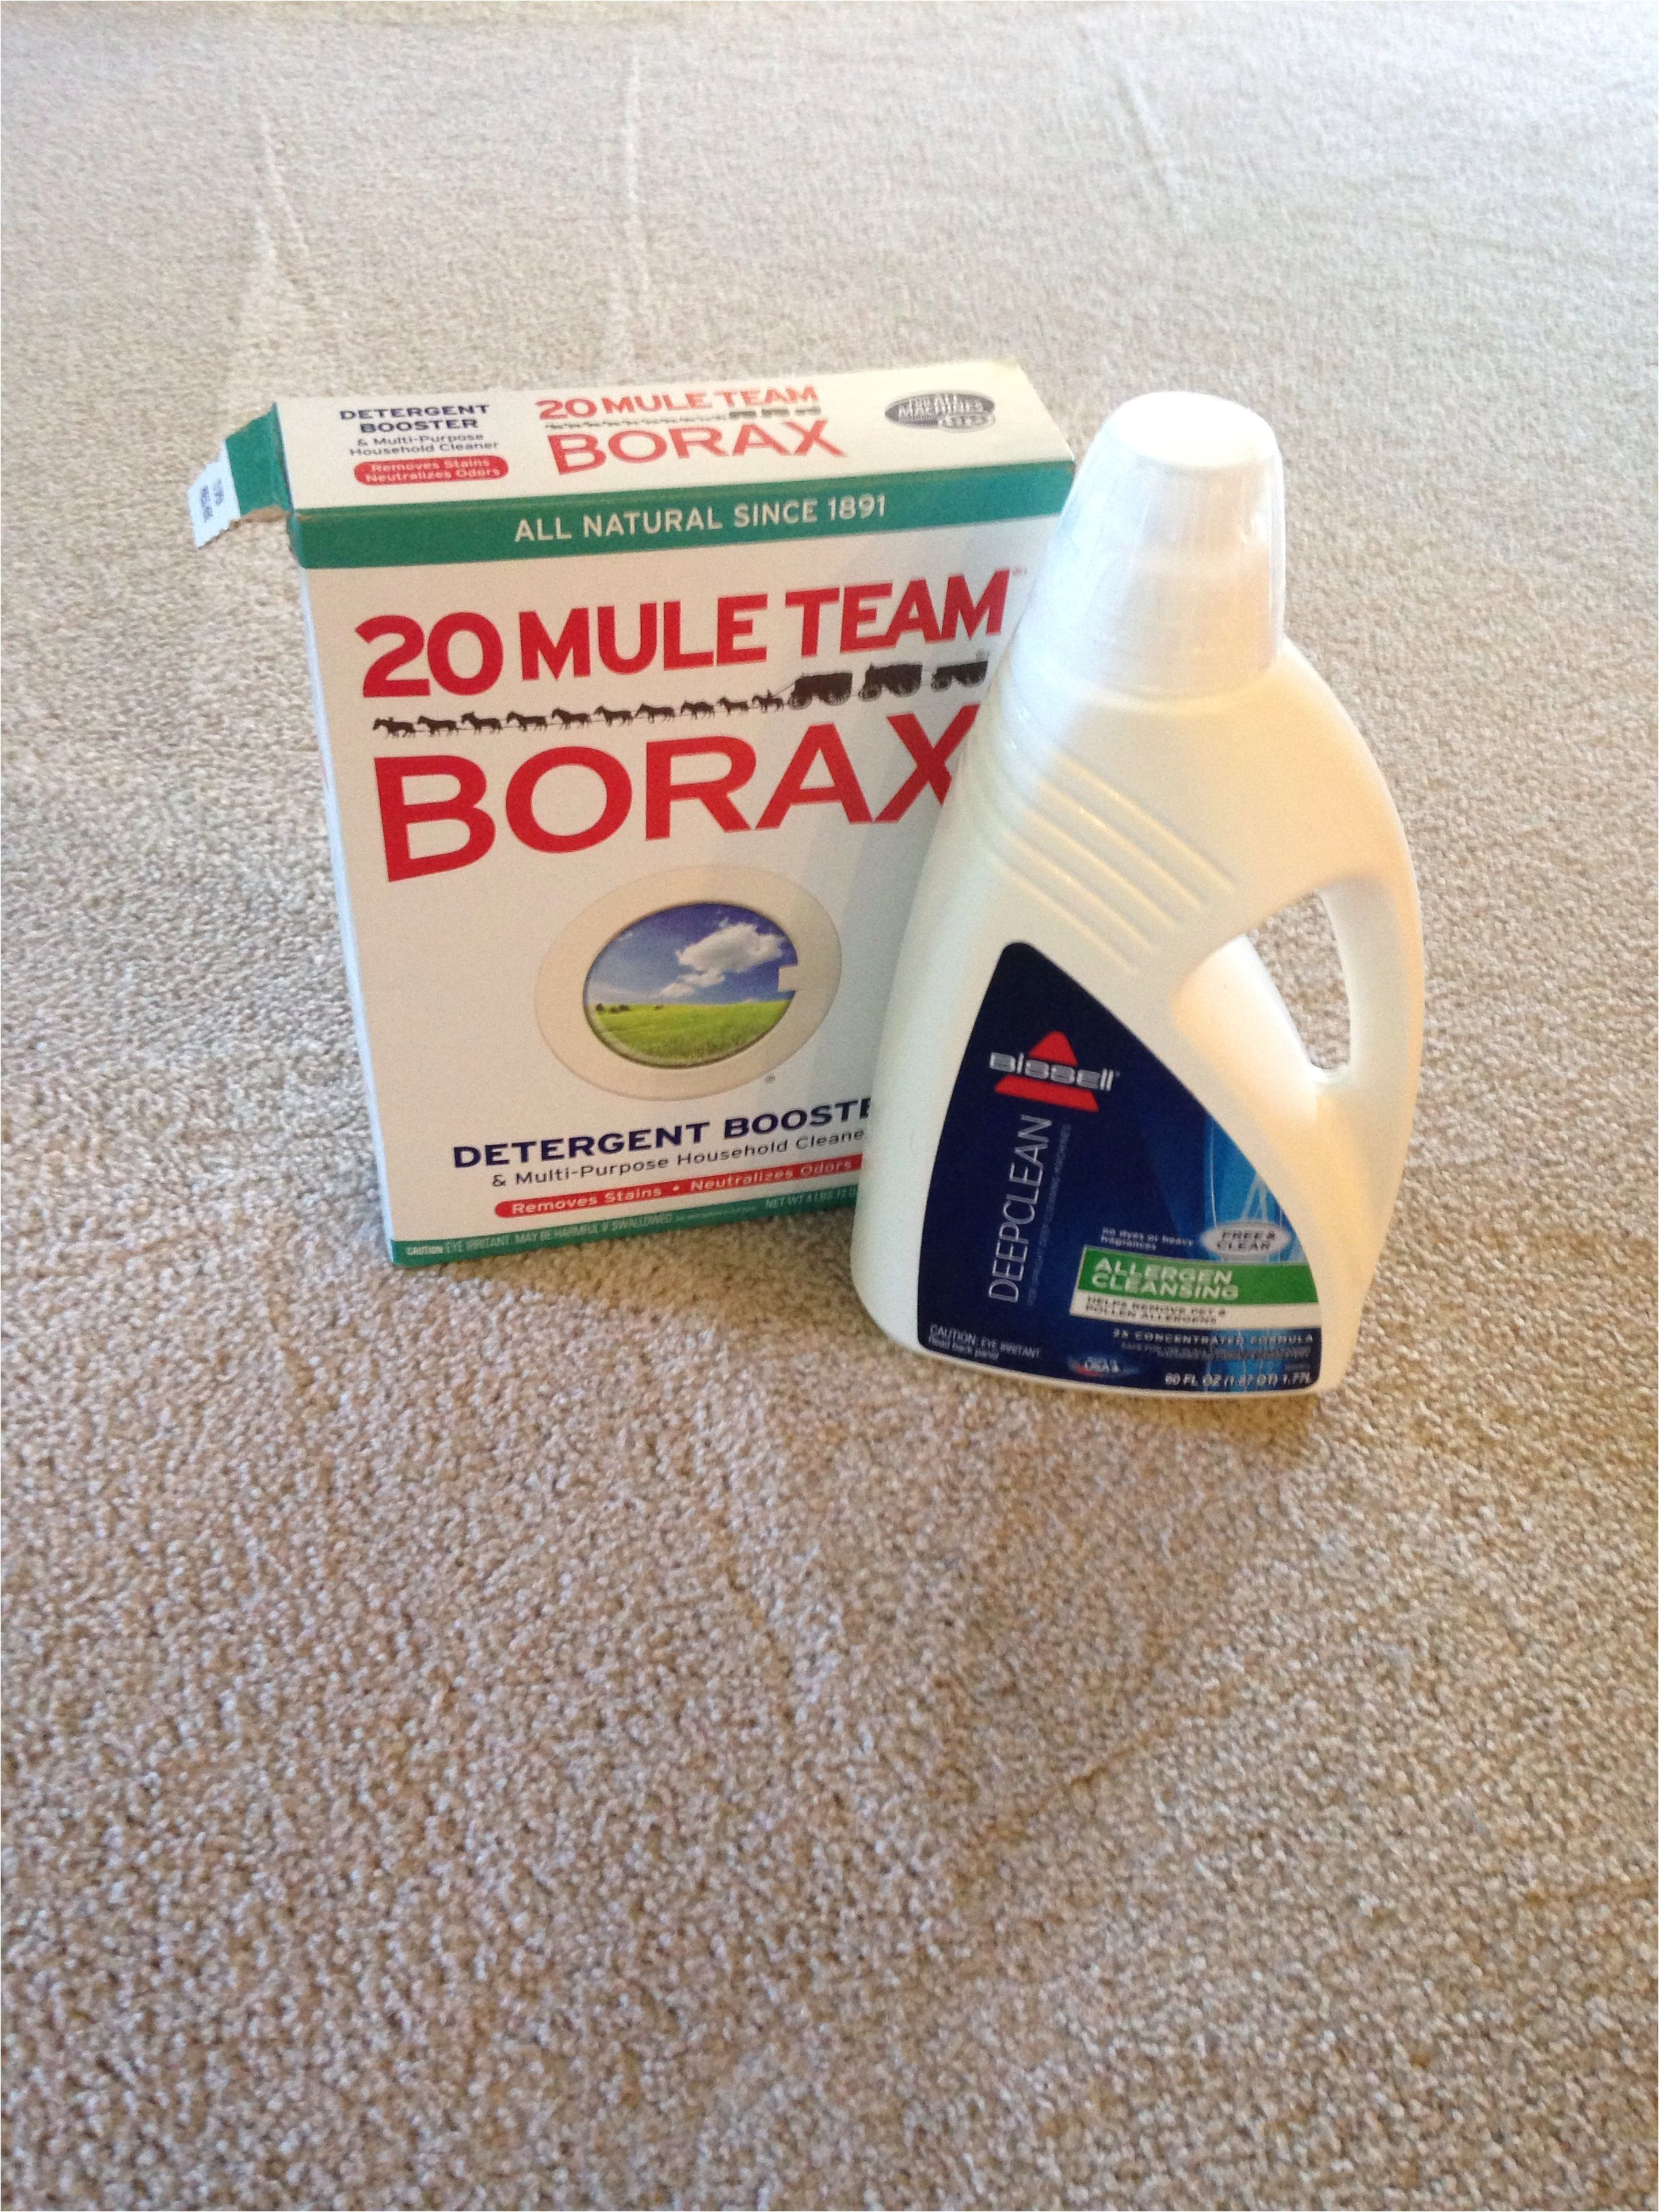 dry carpet cleaning products best of the best carpet cleaning solution for pet stains and eliminates